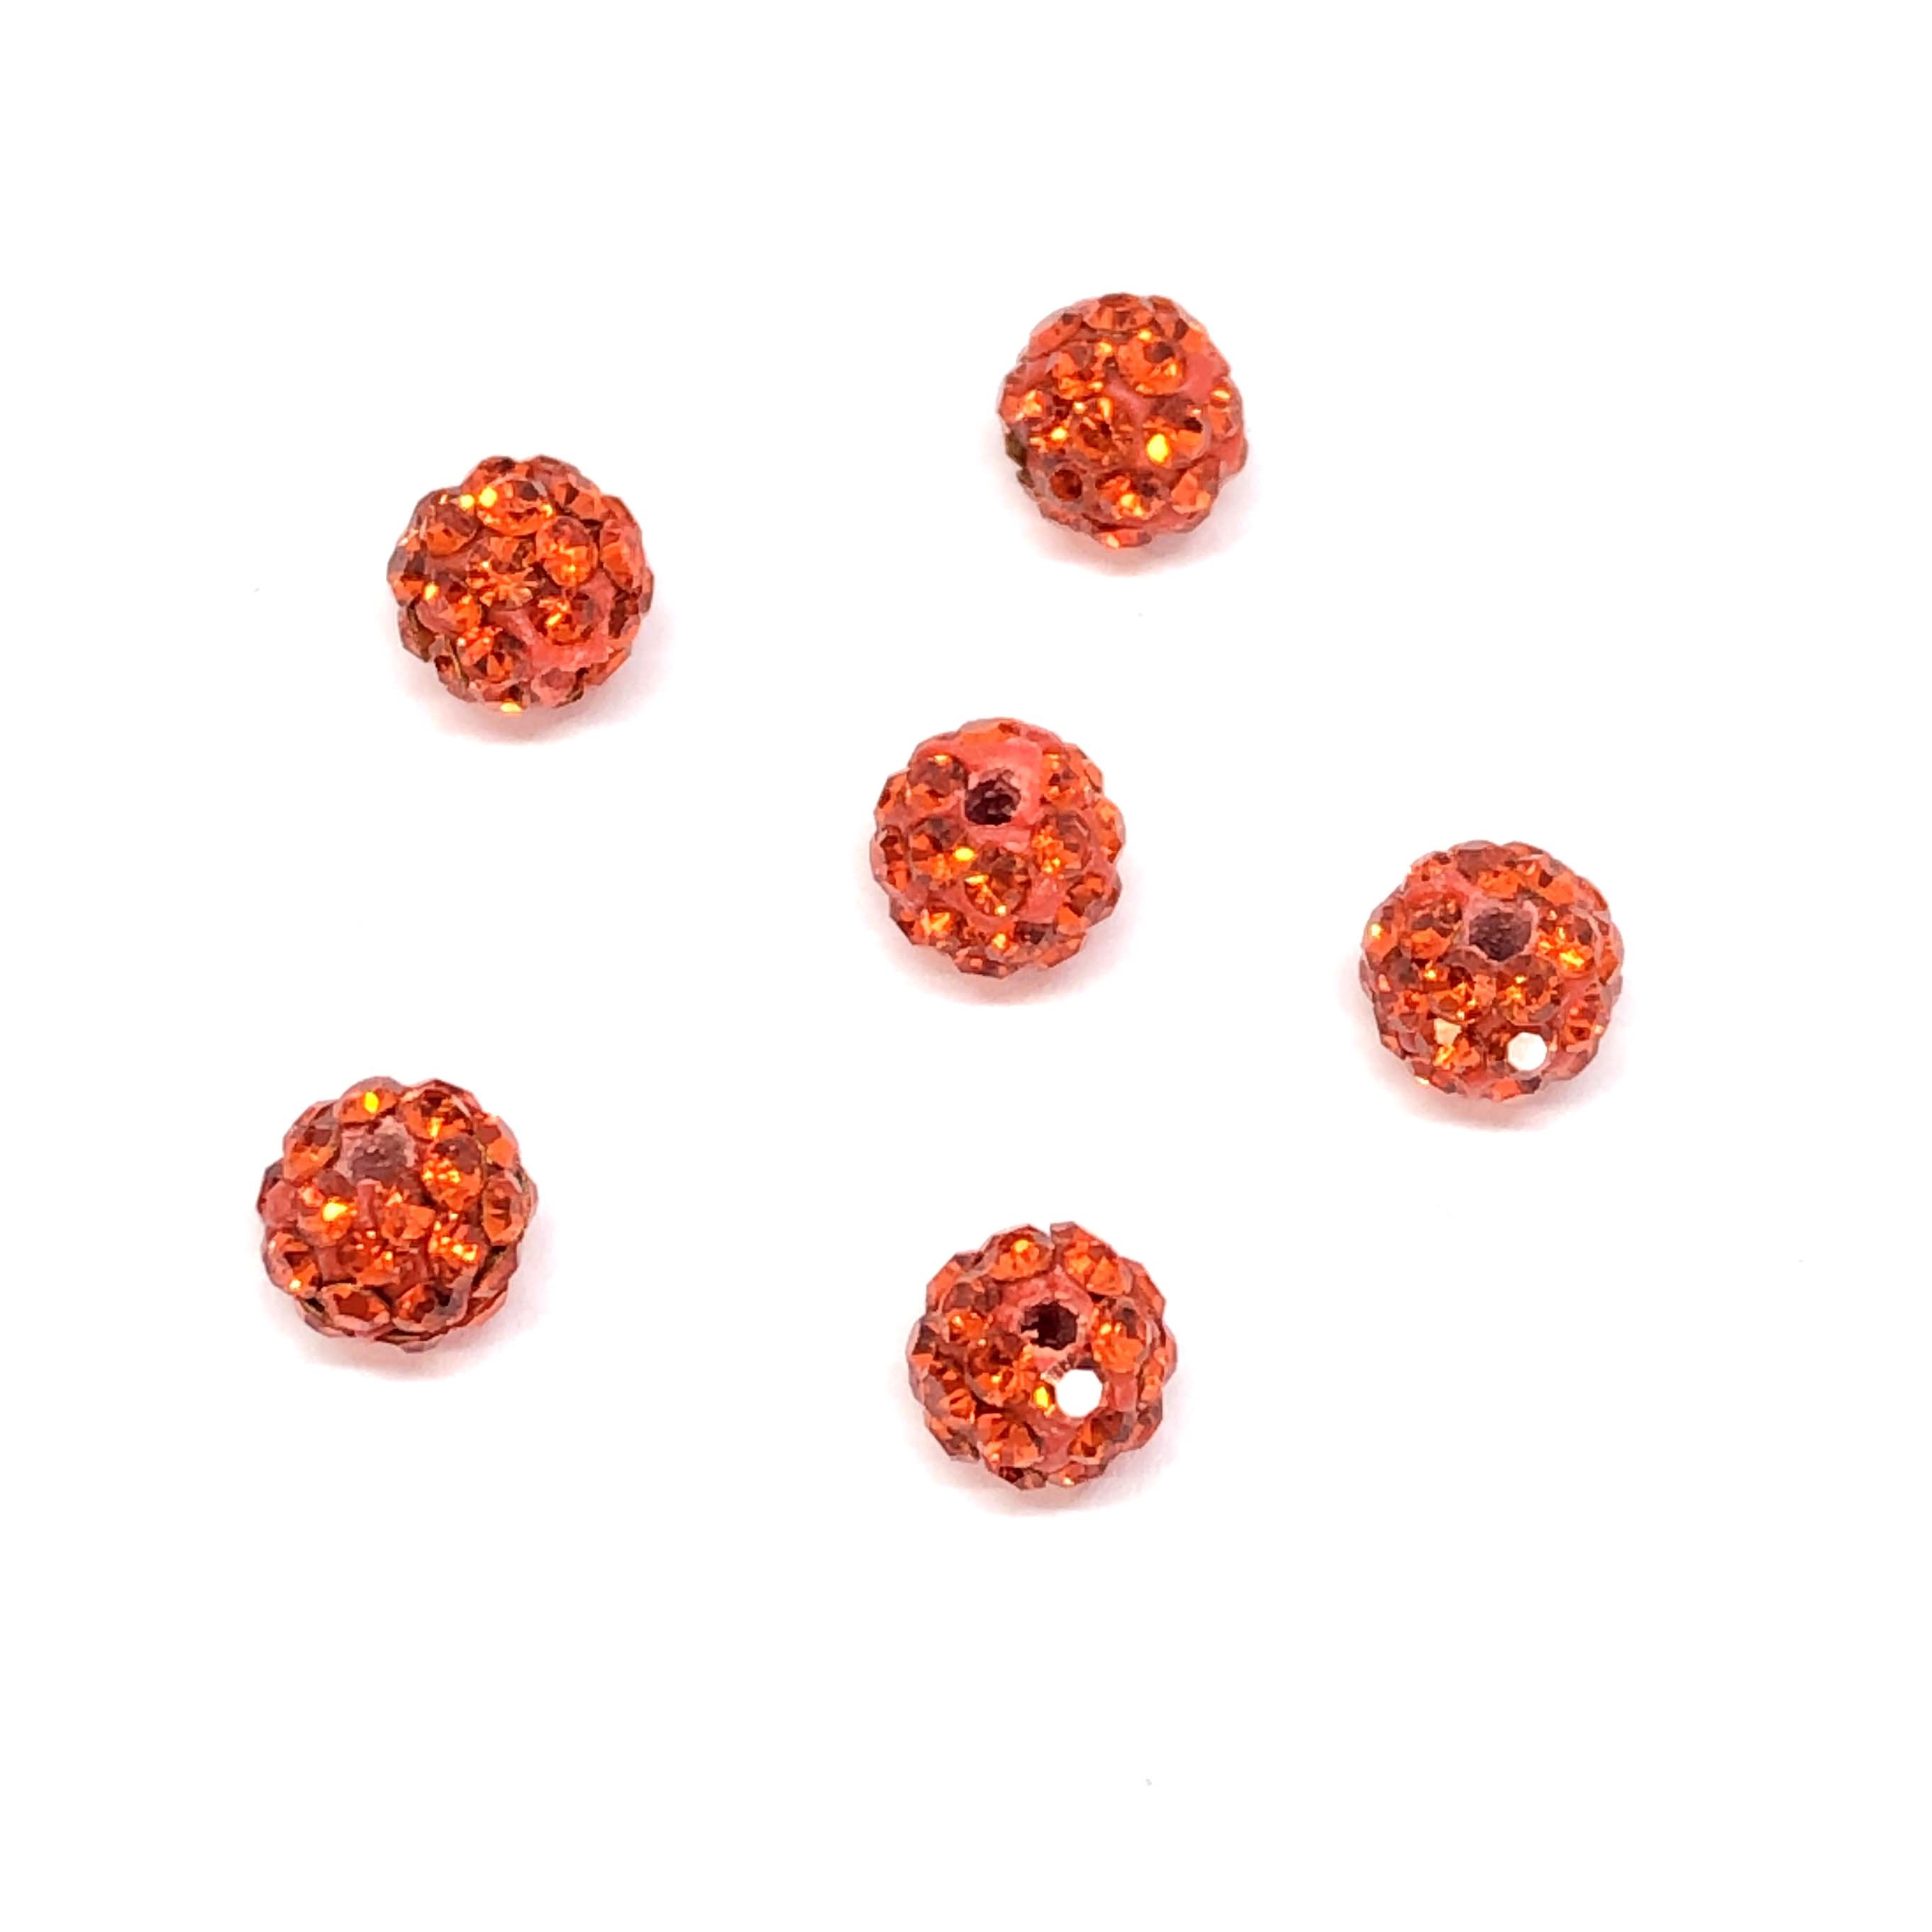 Rhinestone Pave Beads, Orange Beads, 6mm, 0668, ball beads, glass beads, crystal stones, round beads, crystal beads, faceted, bead, glass, b'sue boutiques, jewelry making, jewelry findings, vintage supplies